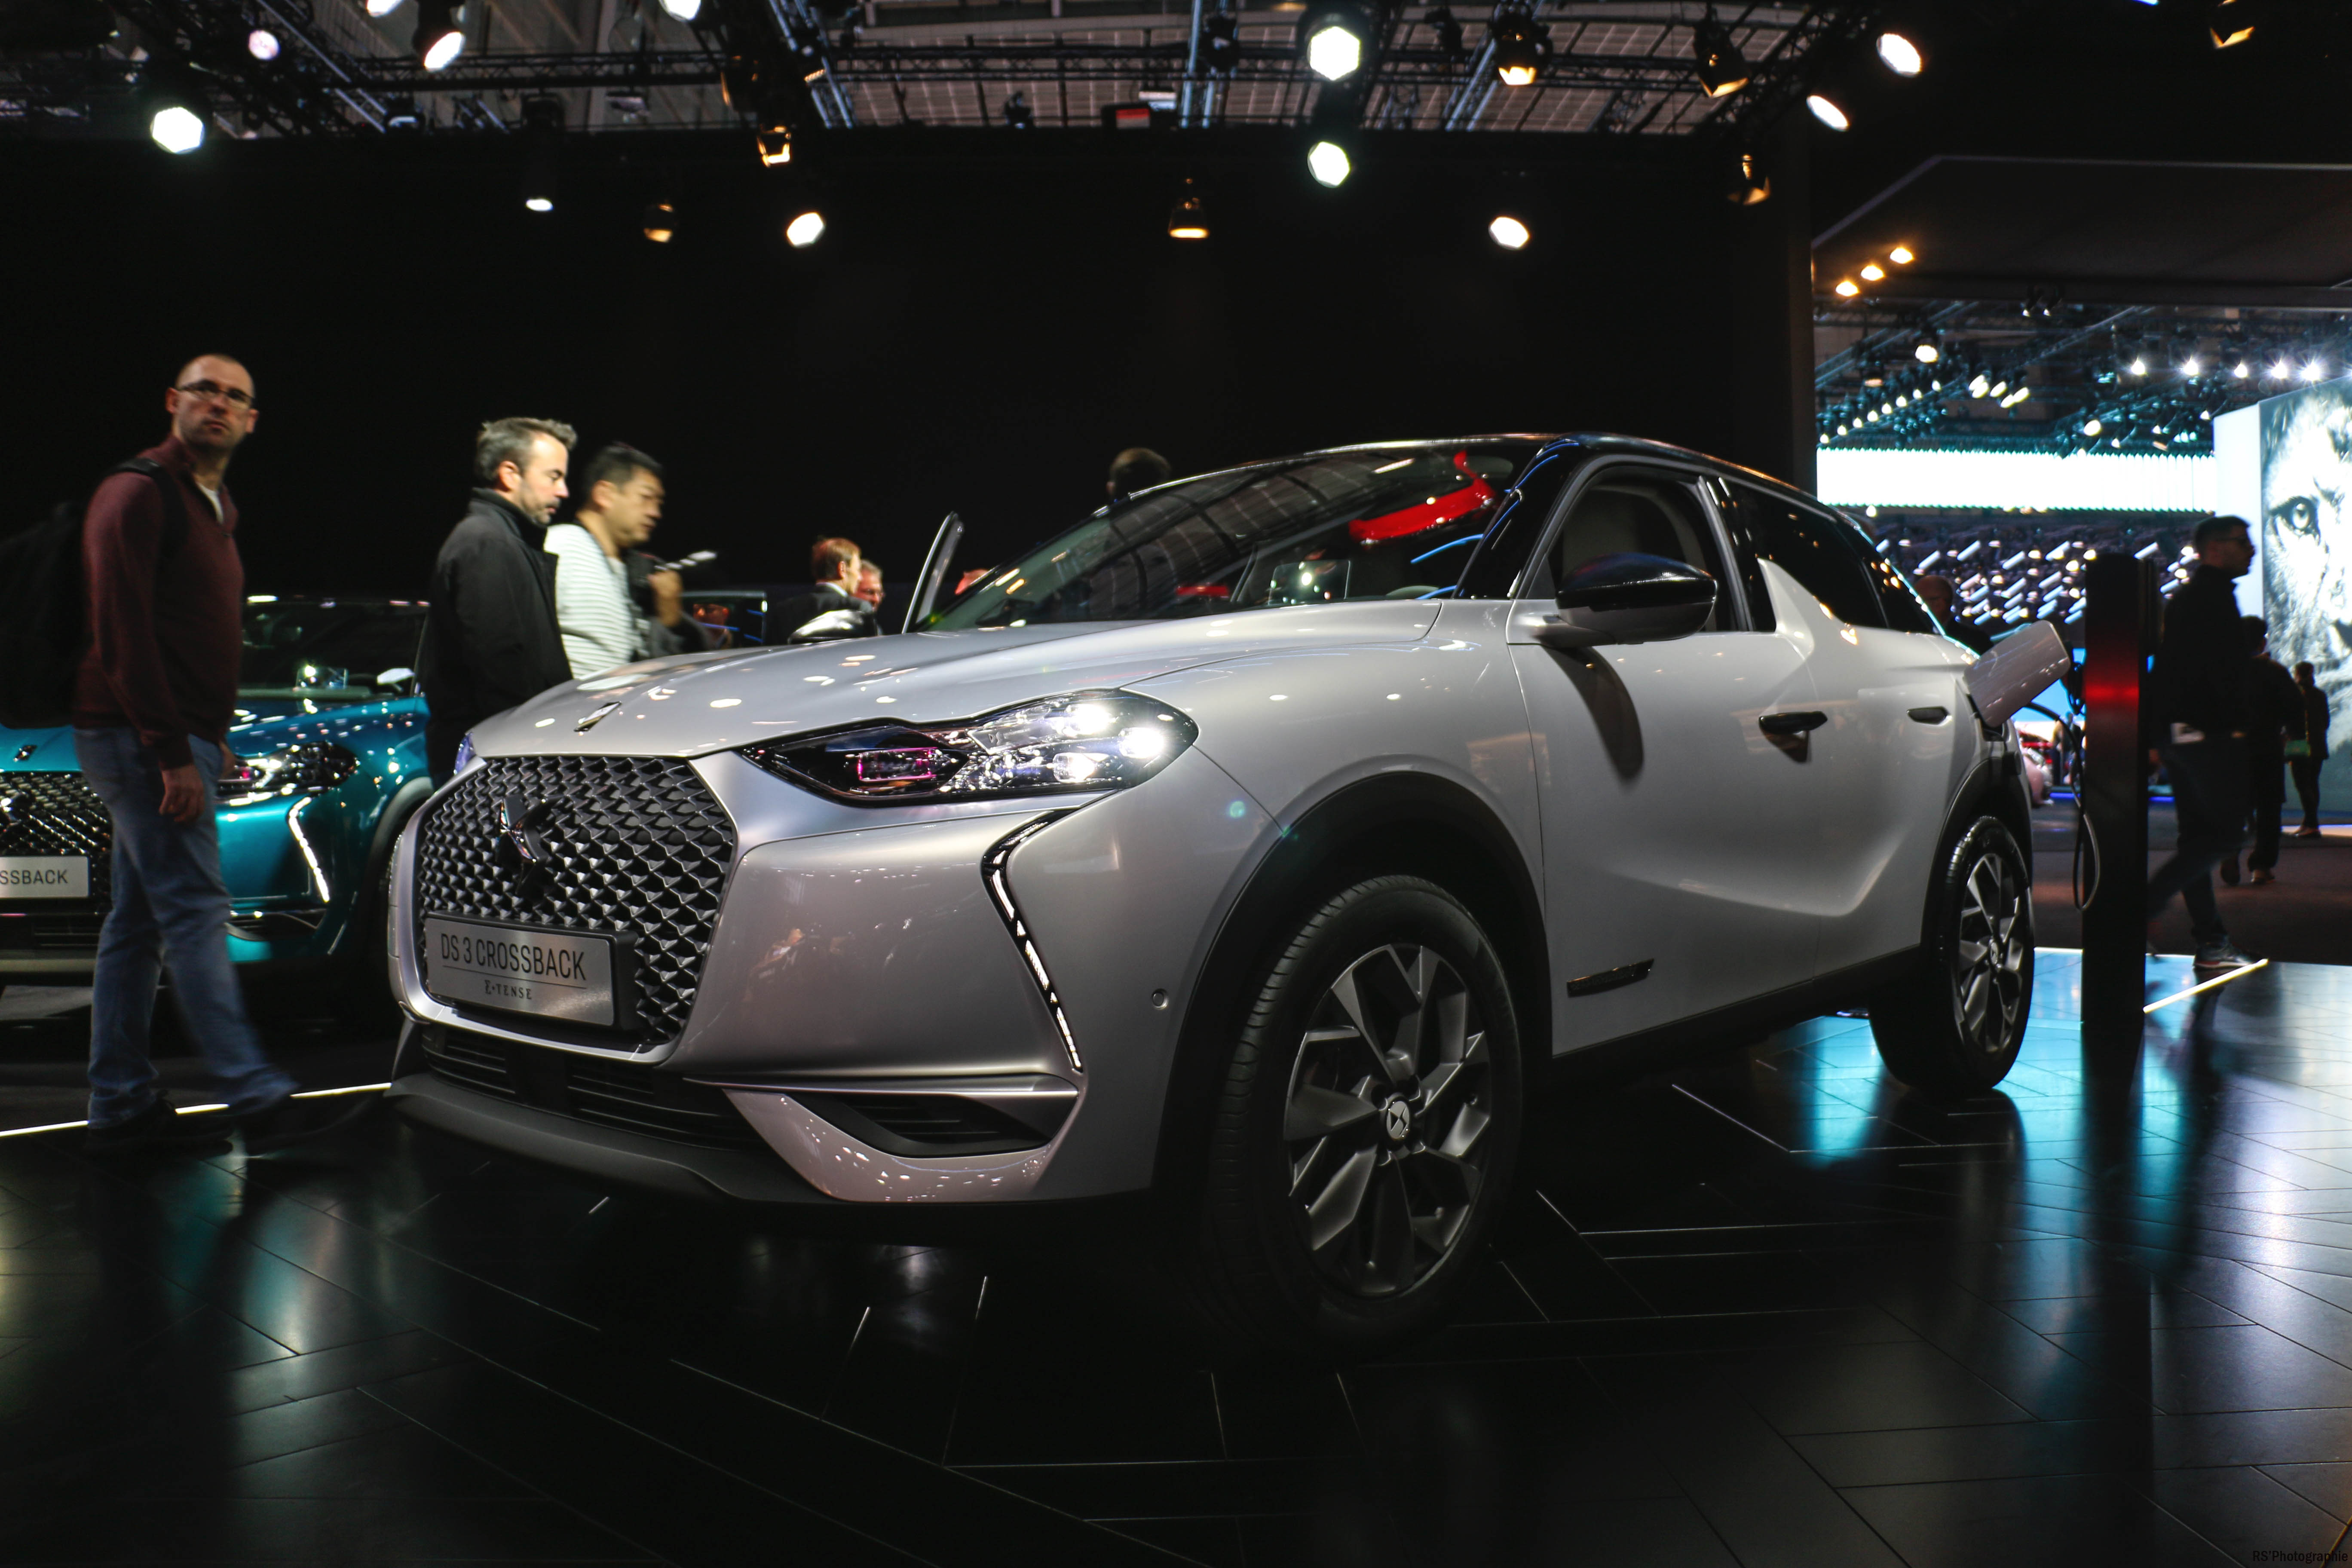 DS 3 Crossback E-Tense - side view - Paris Motor Show - 2018 - Mondial Auto - photo by Arnaud Demasier RS Photographie